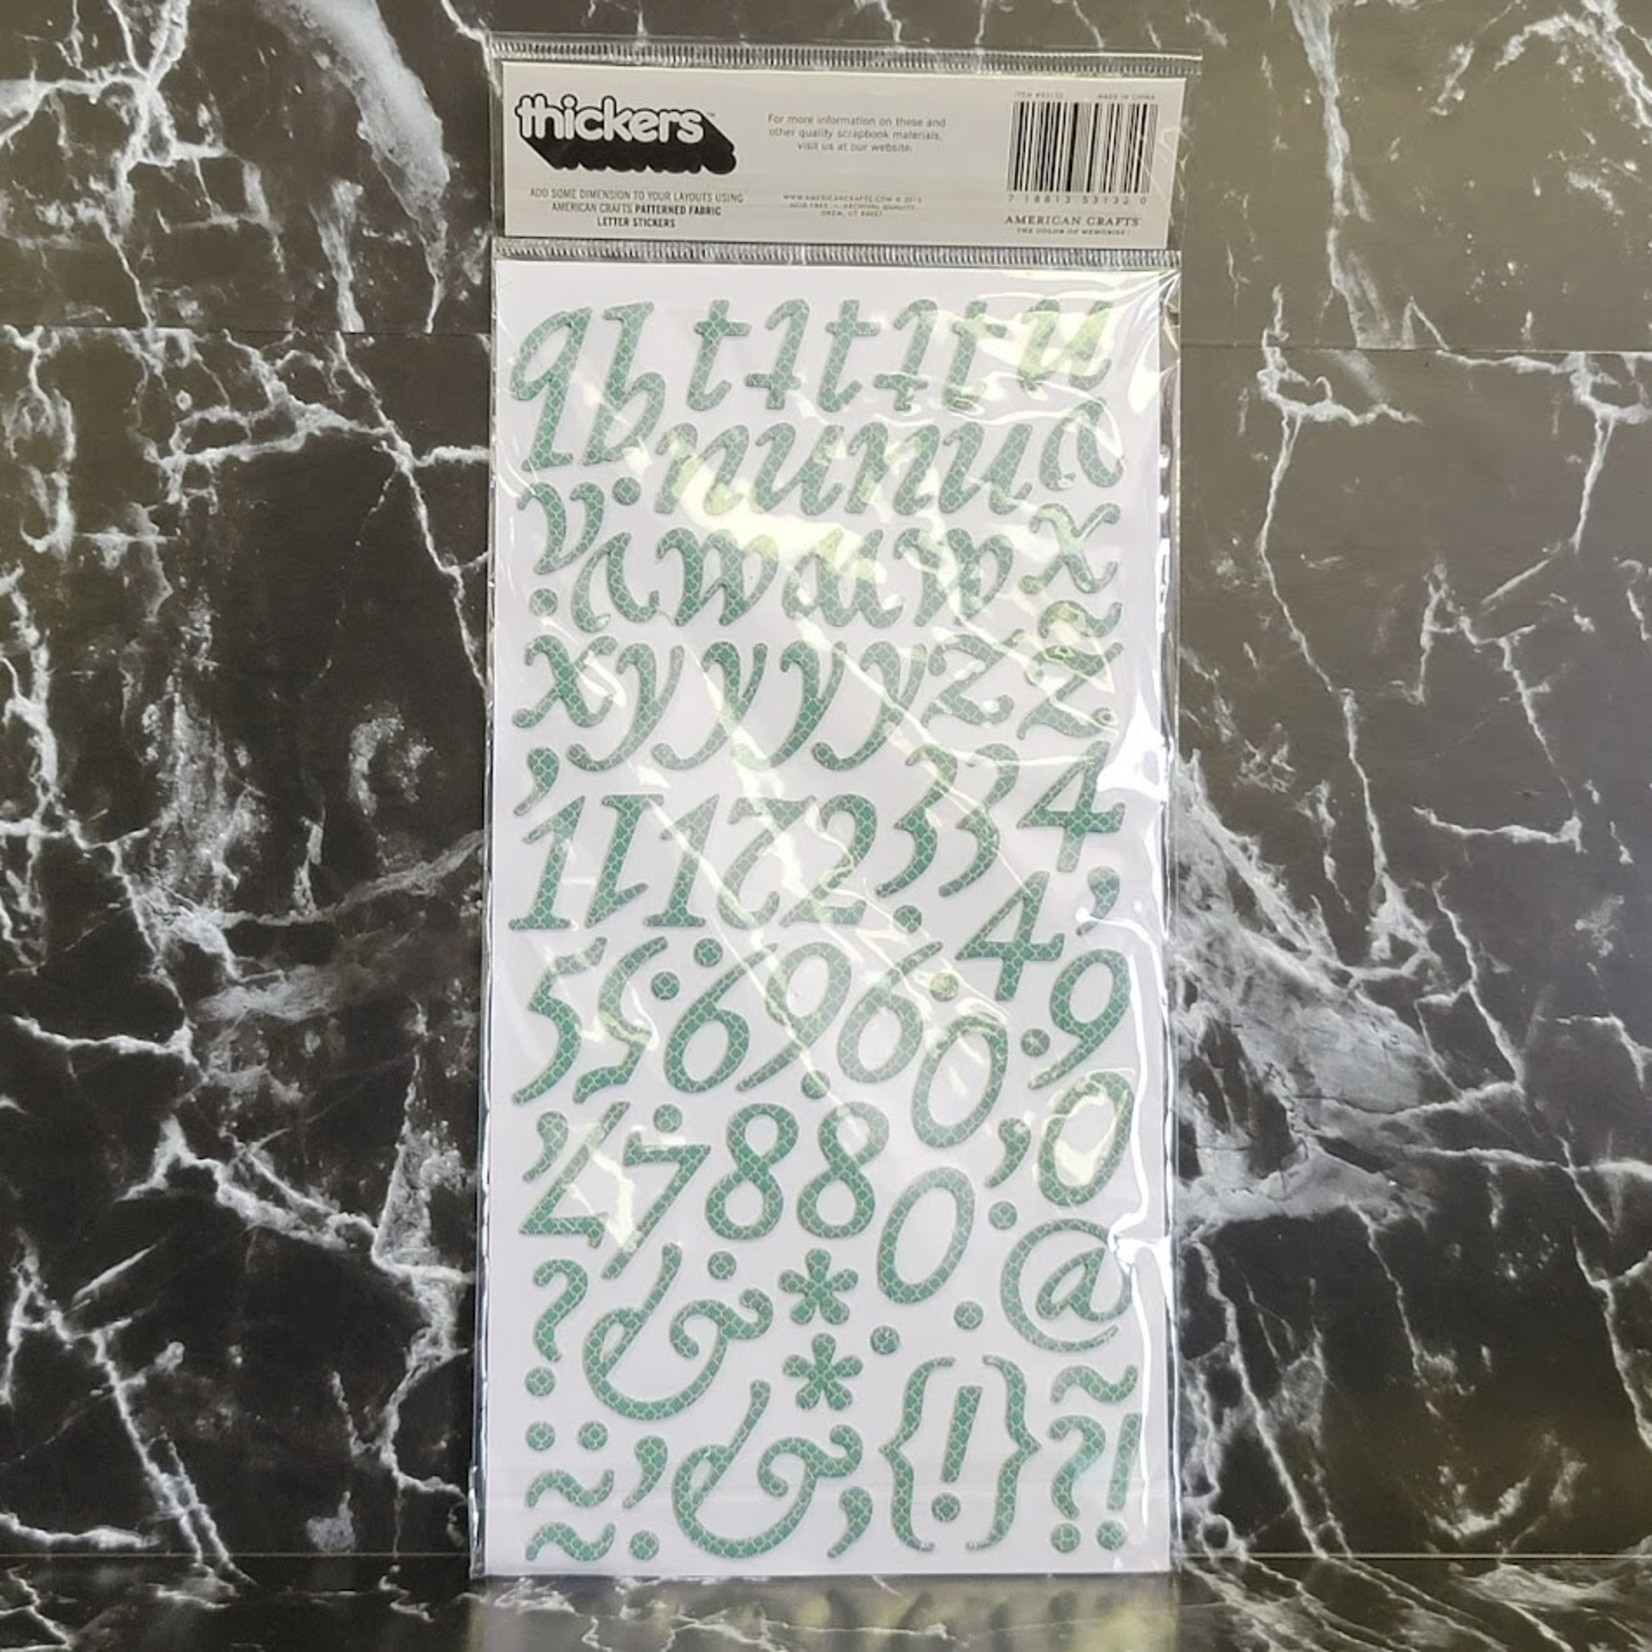 American Crafts thickers-Paperback-Printed Fabric Letter Stickers - Green